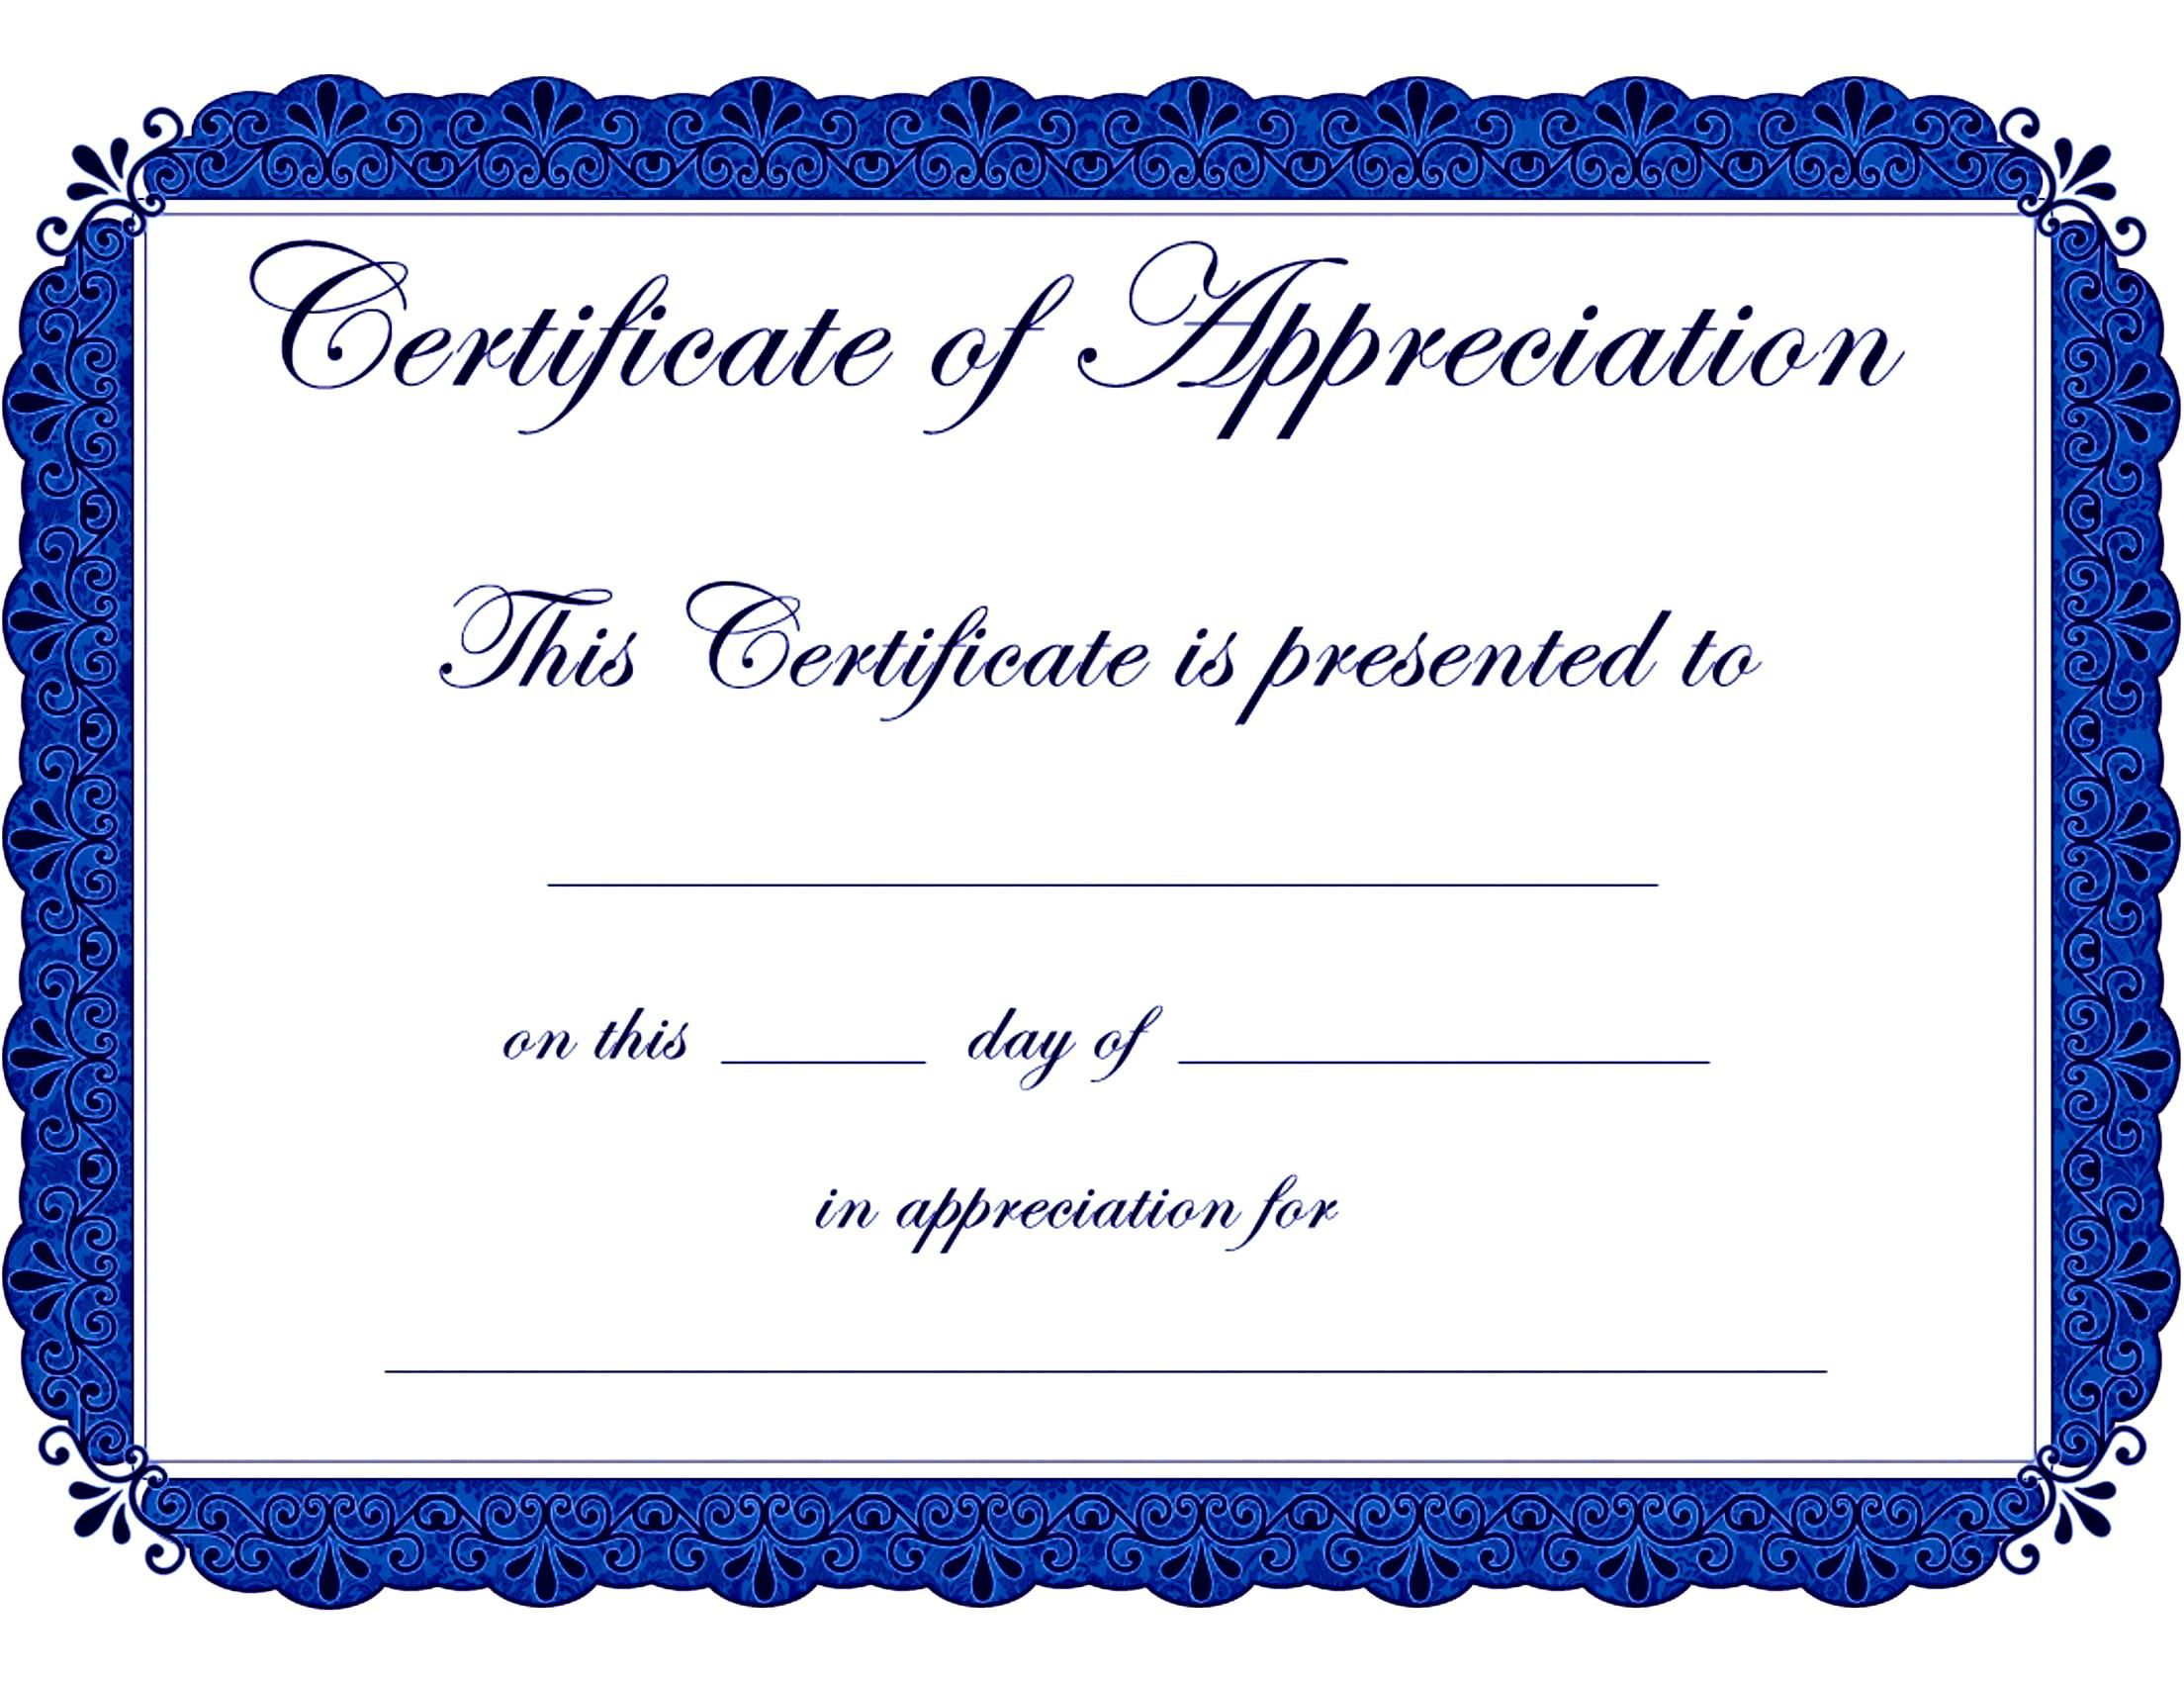 Appealing award template word for certificate of appreciation with free certificate of completion template yadclub Image collections